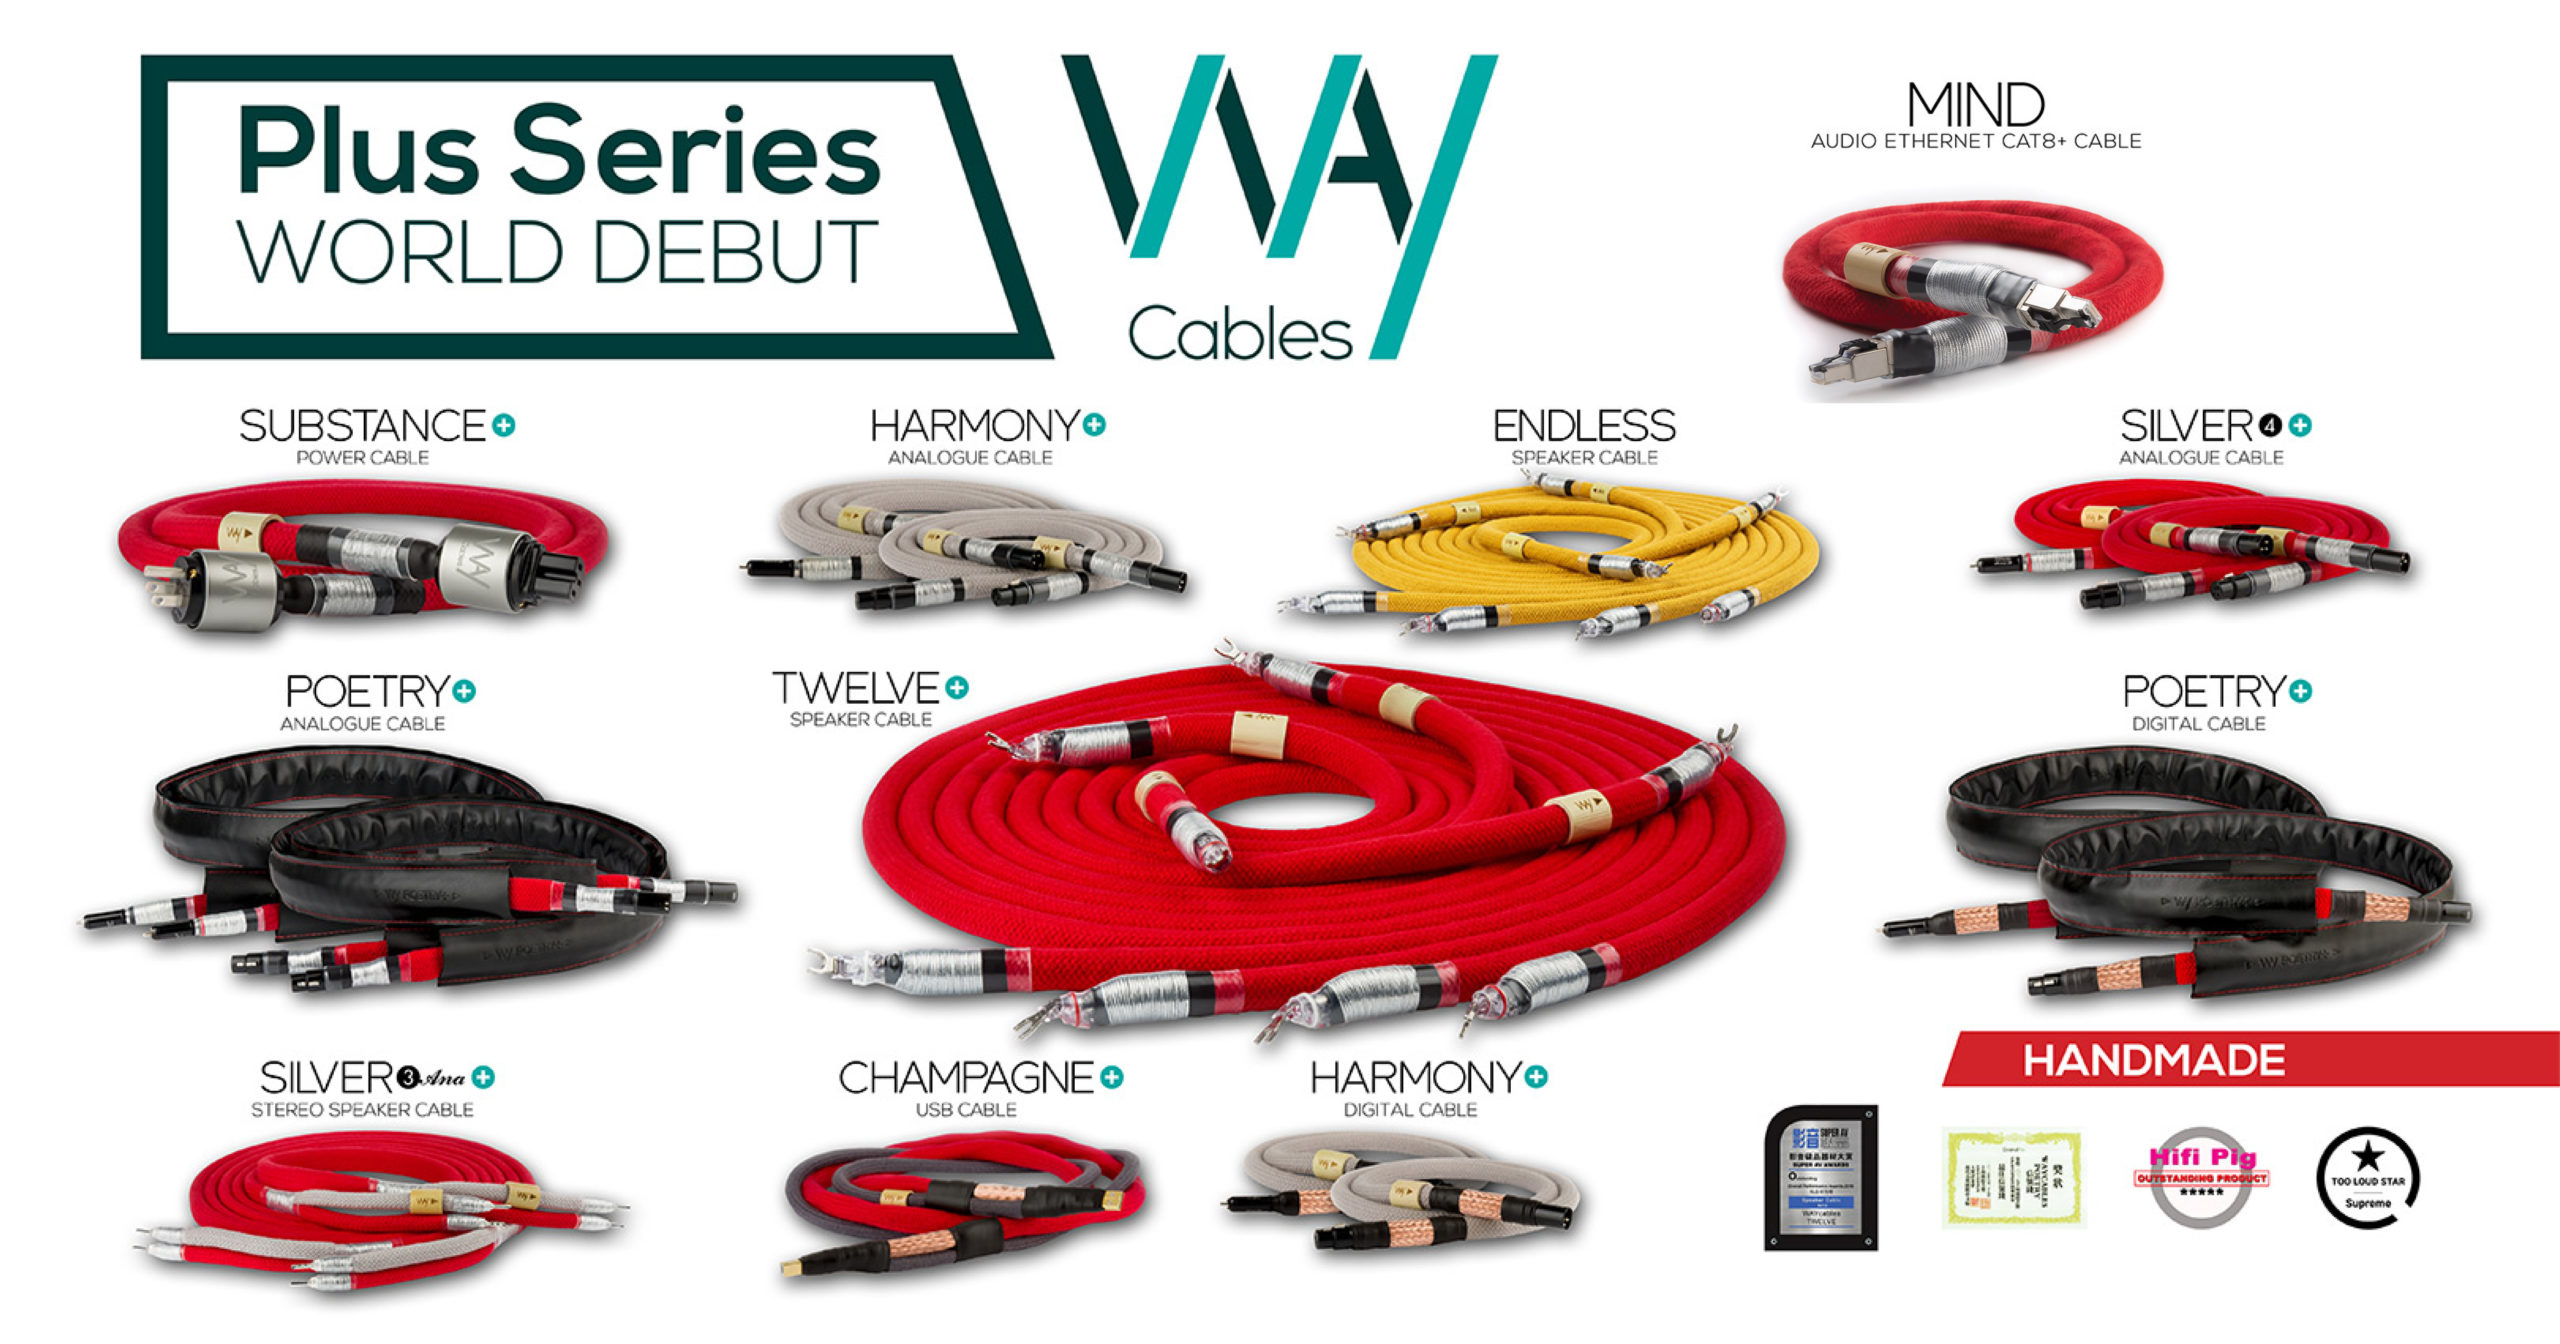 WAY Cables Plus Series